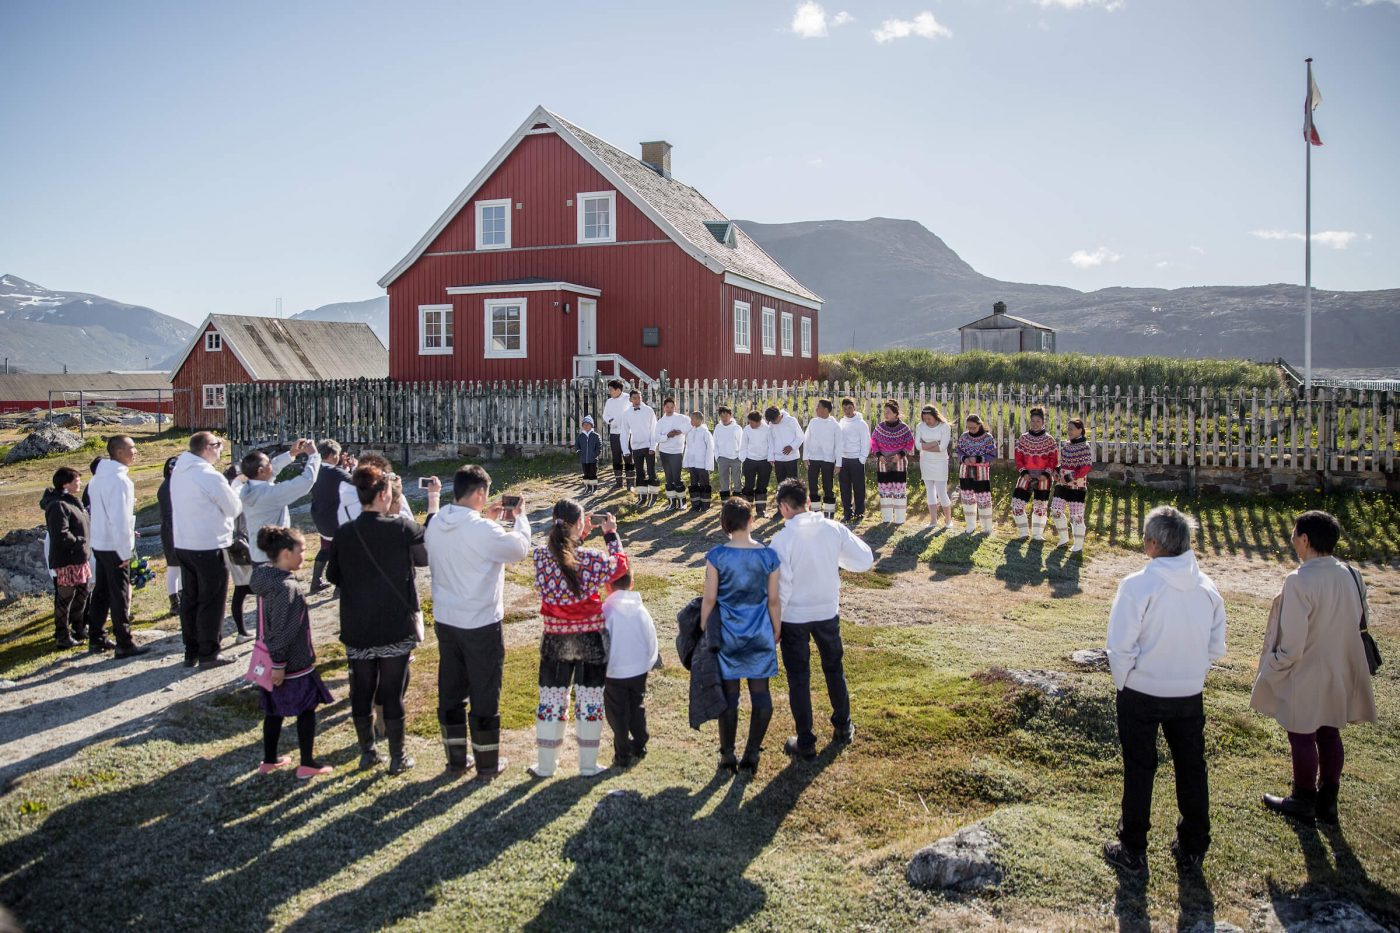 Kids from Nanortalik in South Greenland lining up for their day of Conformation at the church. Photo by Mads Pihl - Visit Greenland